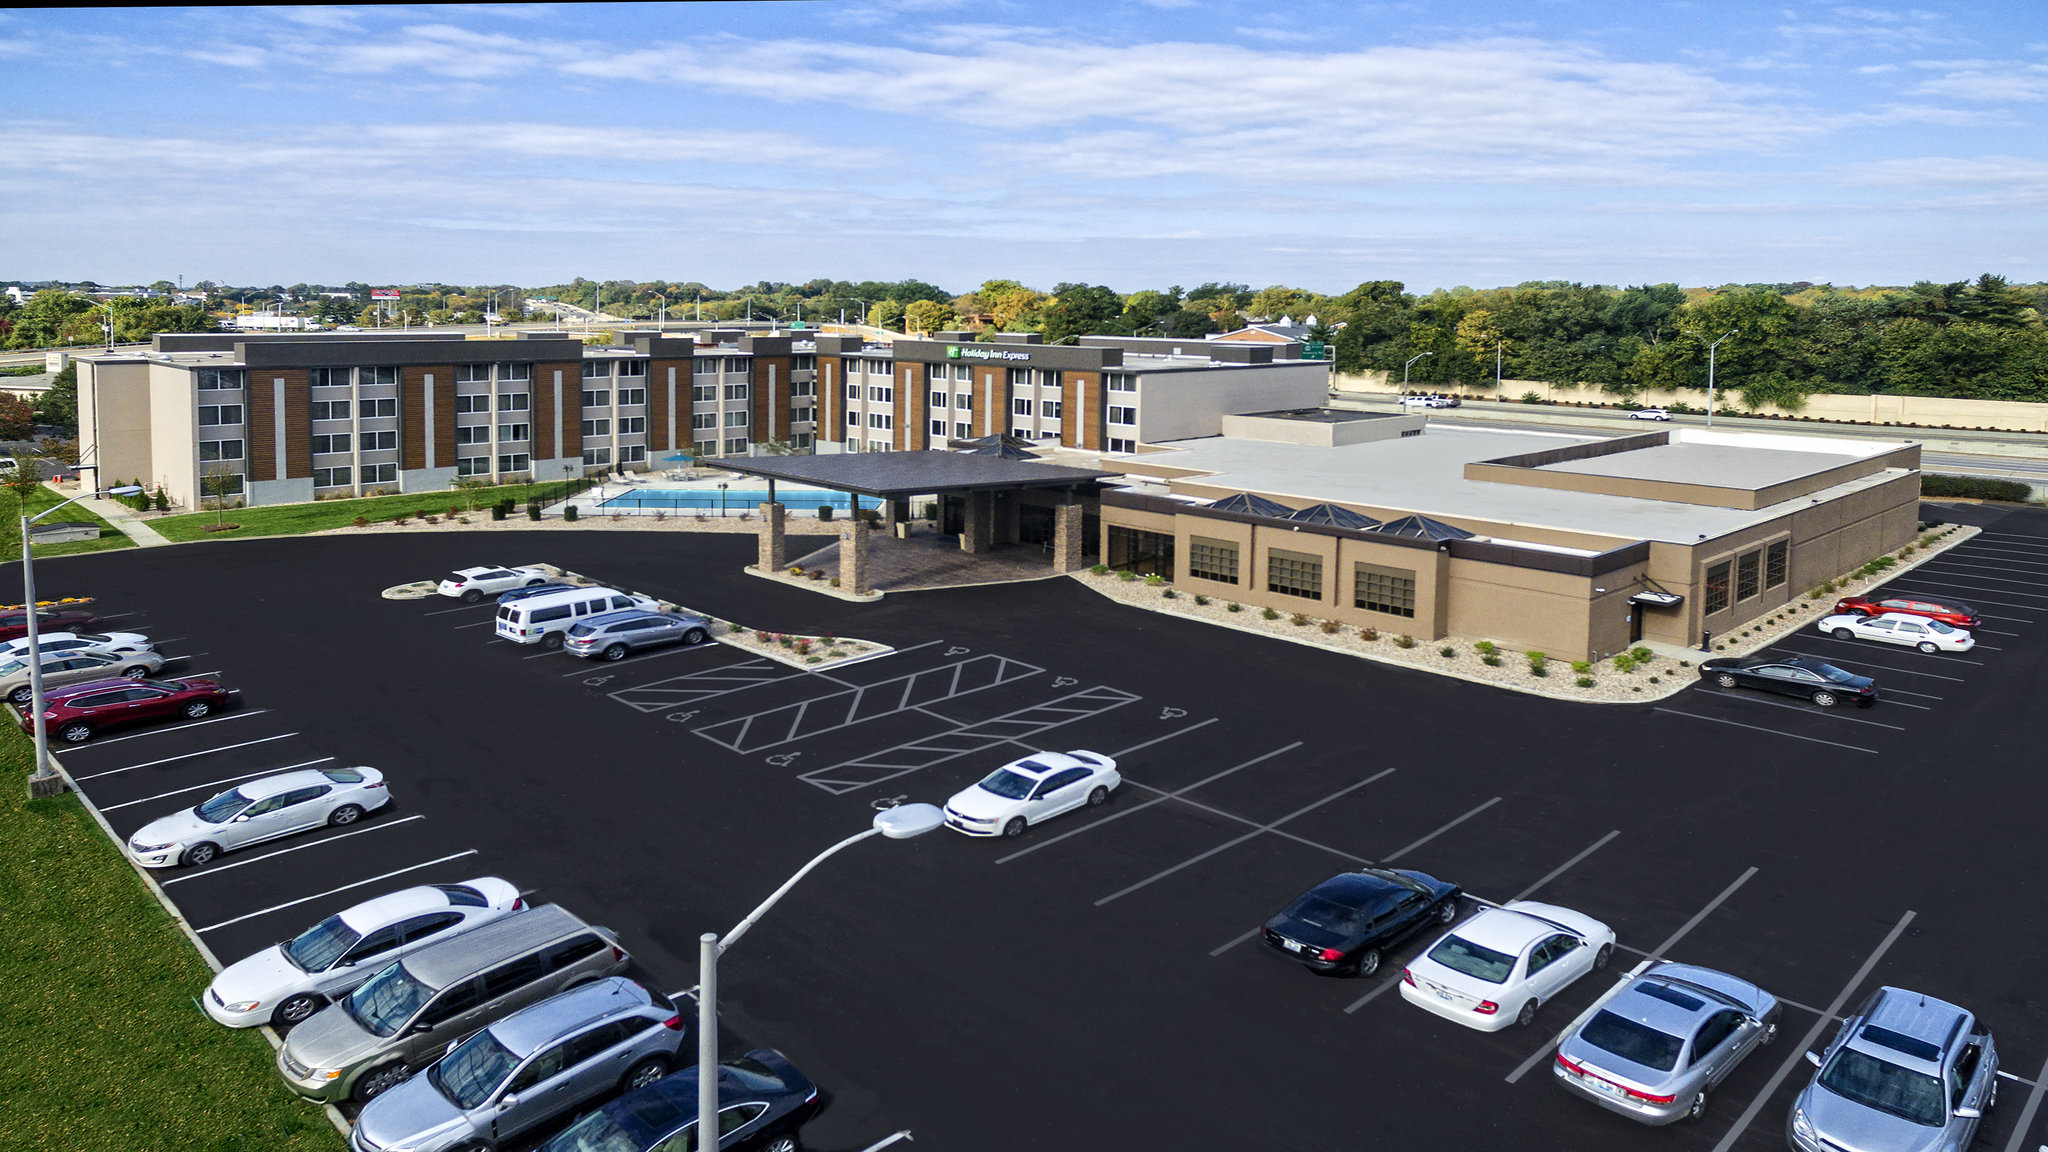 Holiday Inn Express Airport Expo Center